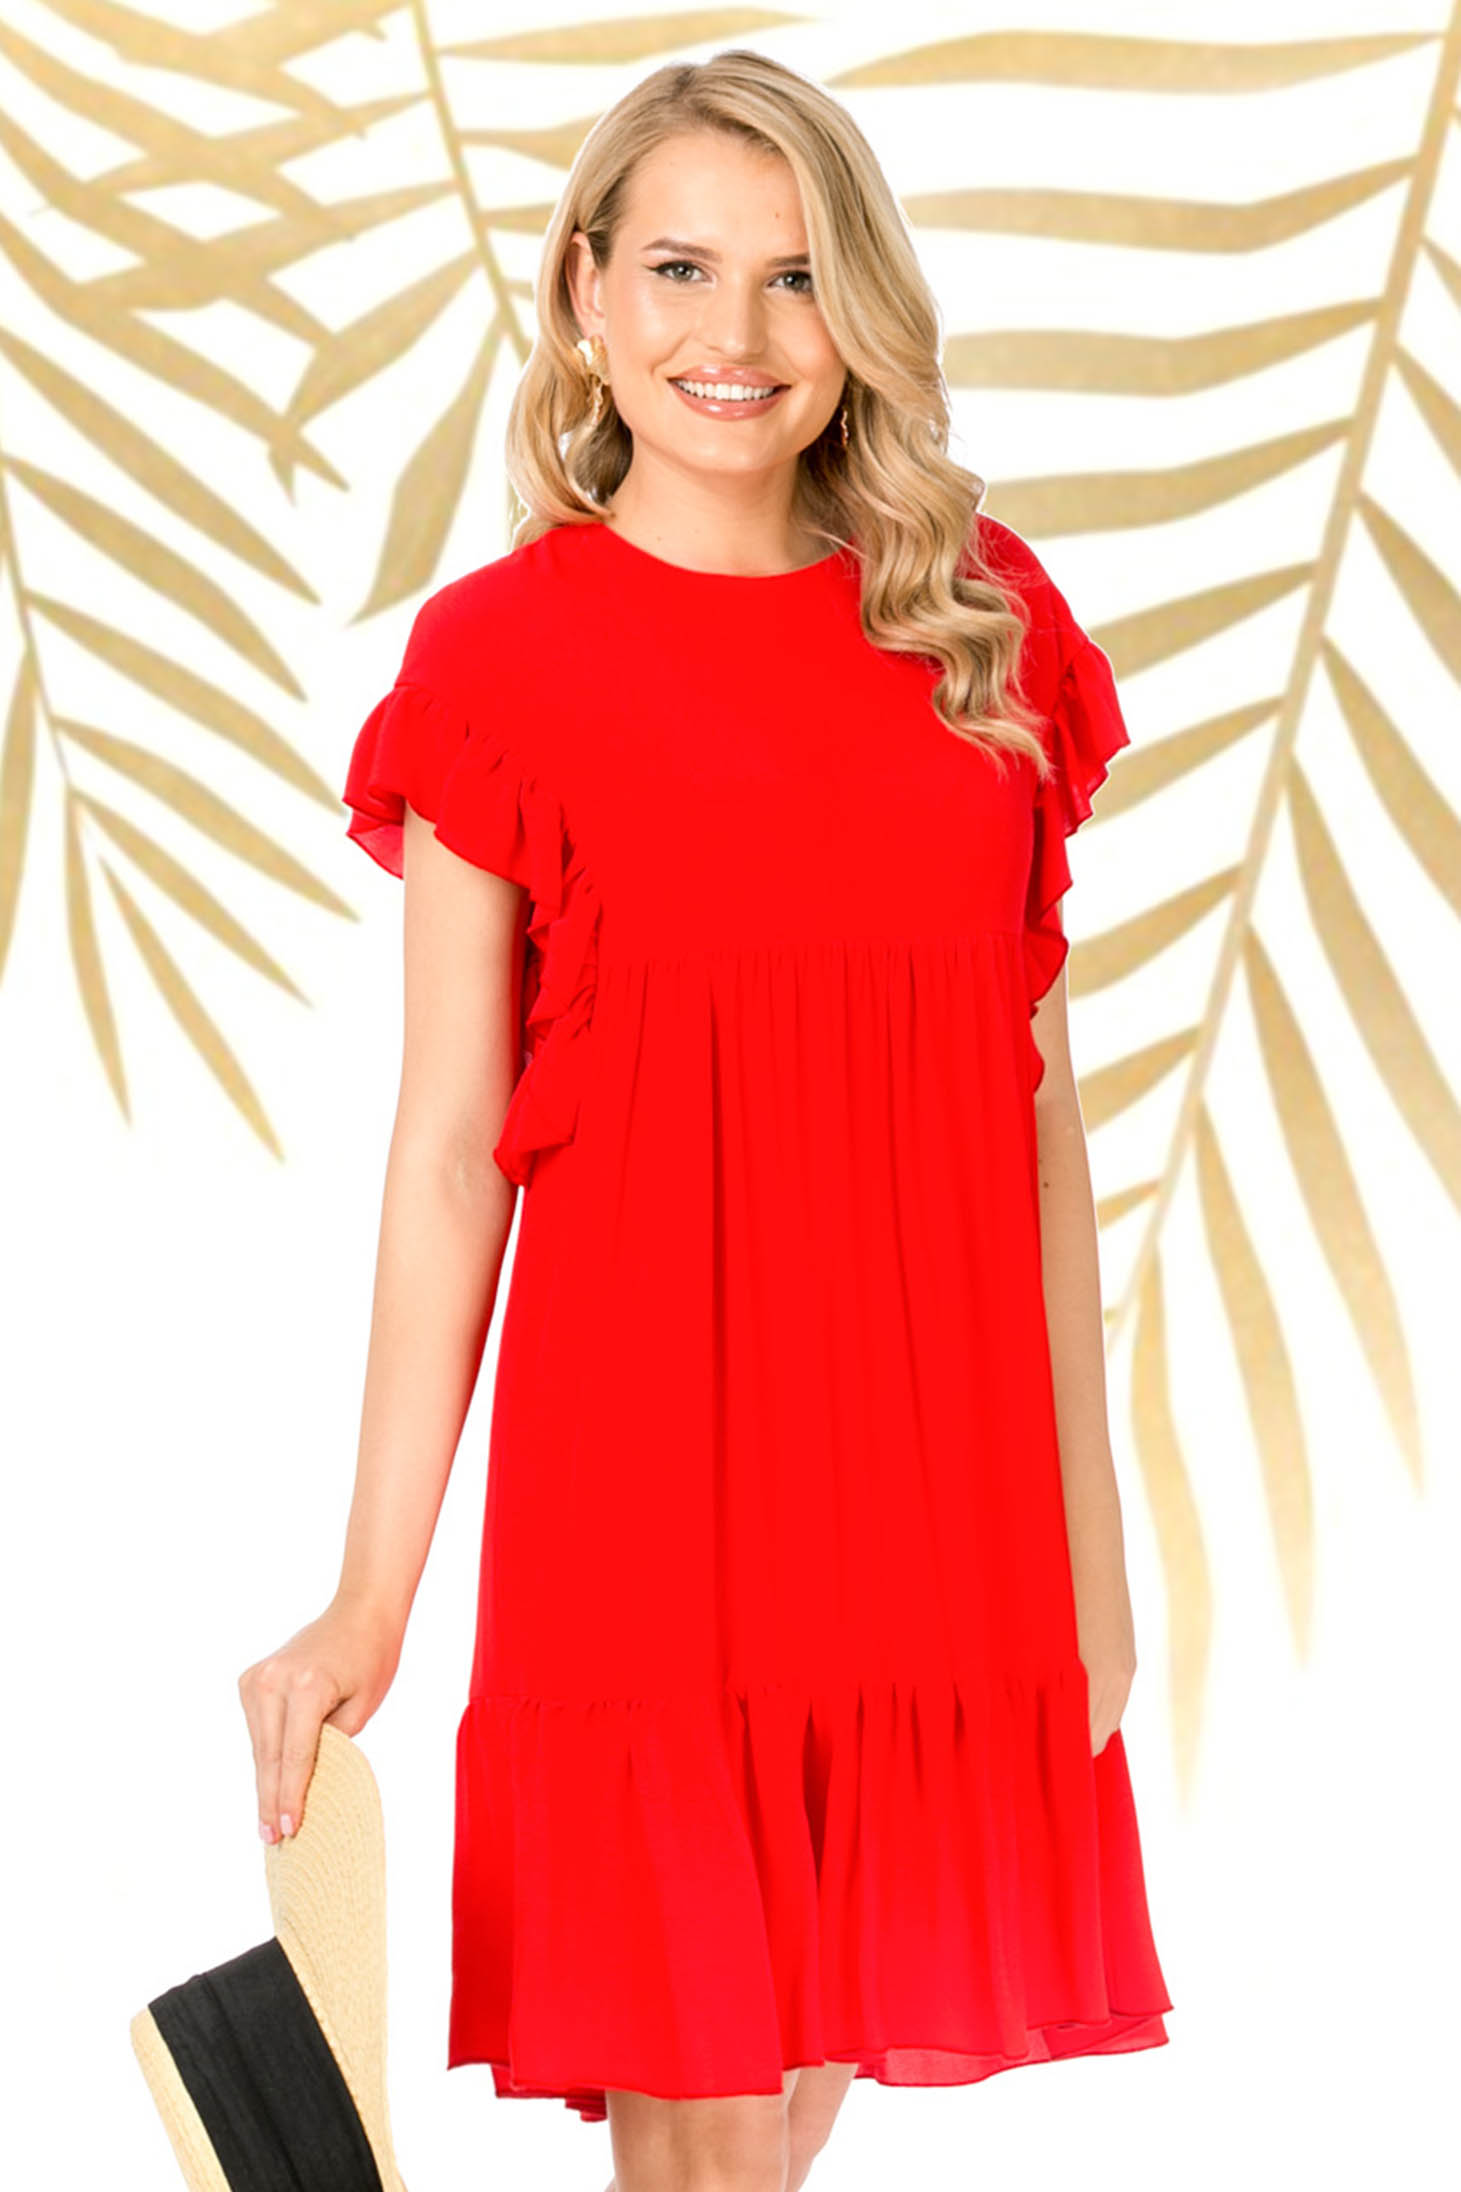 Red dress short cut daily flared thin fabric